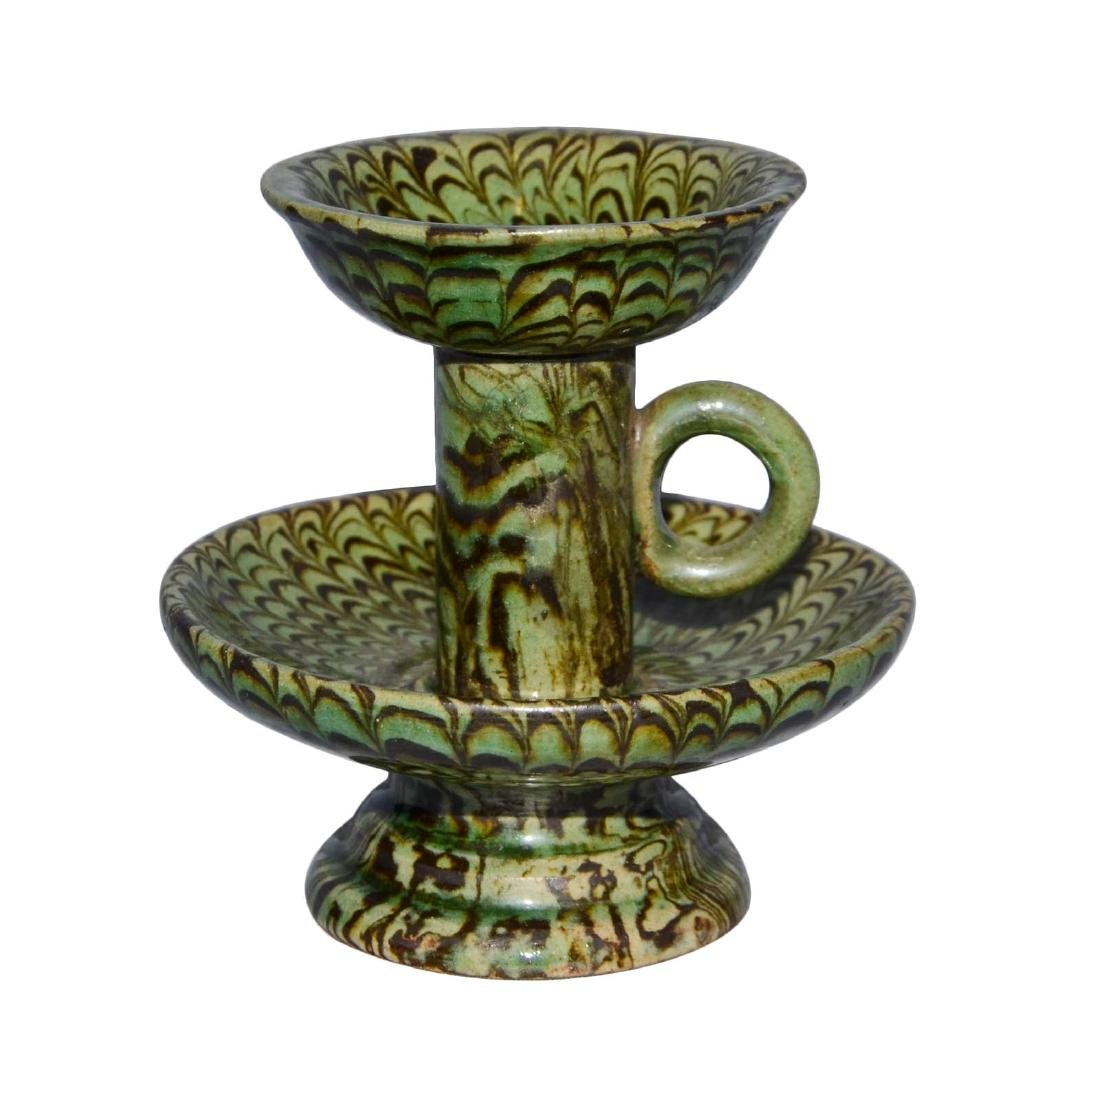 Song, A Rare Green-Glazed Marbled Pottery Lamp with - 3